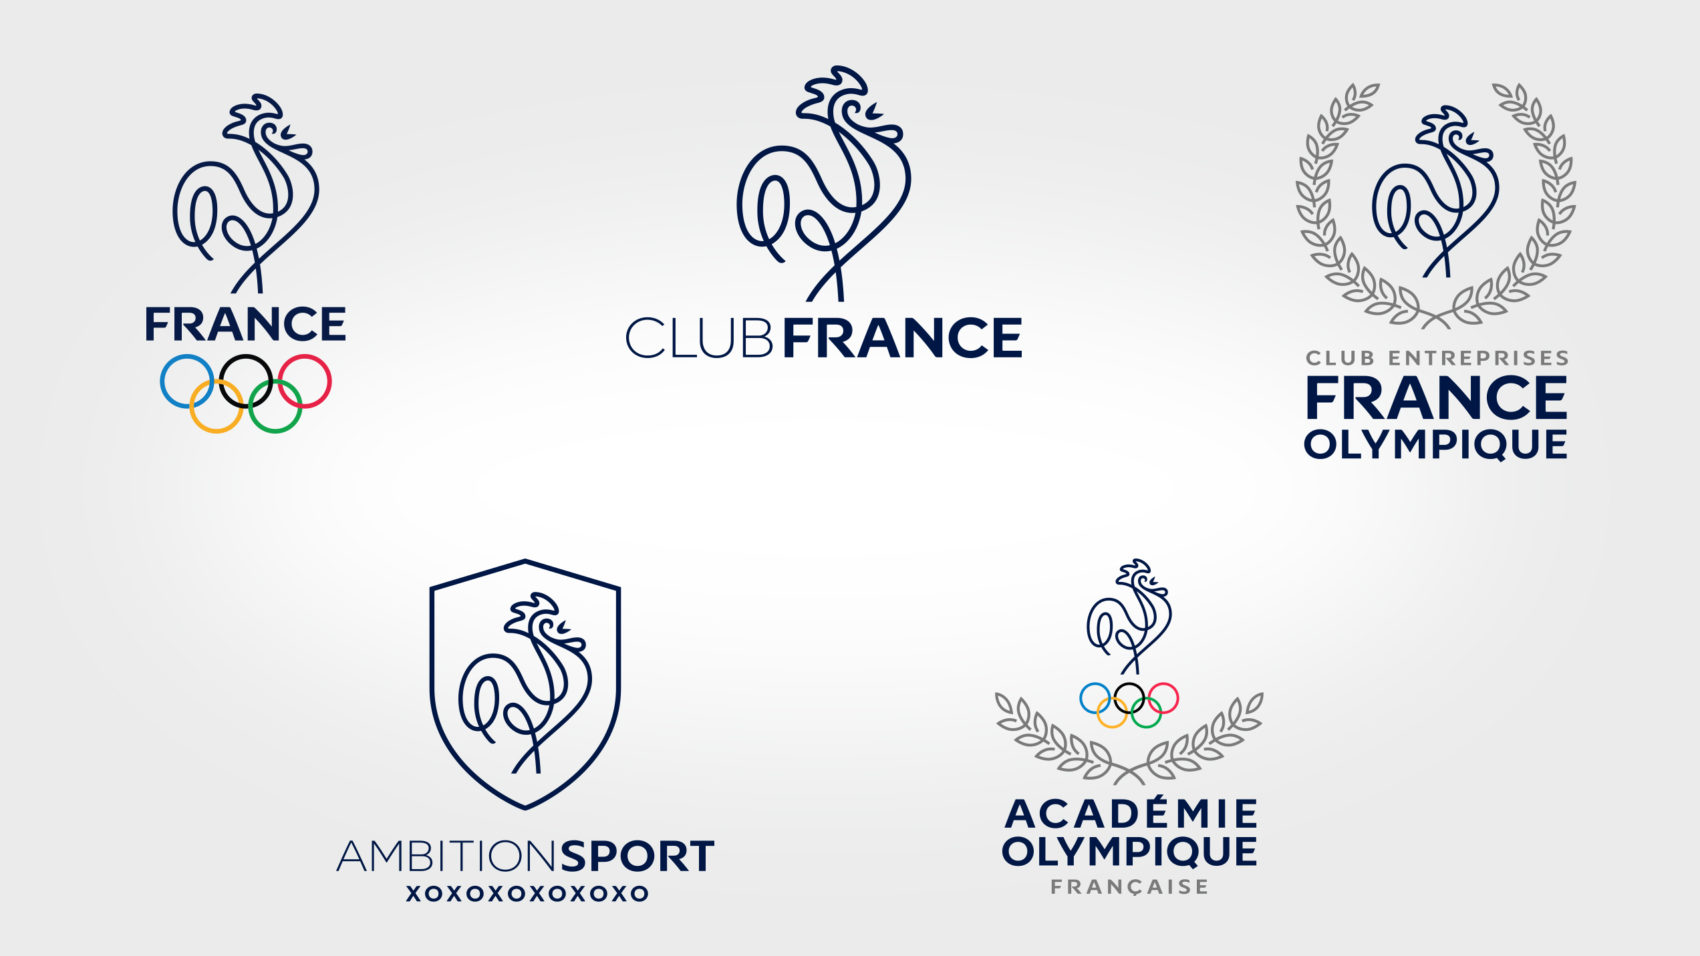 Projet_project_realisation_CNOSF_comite_national_olympique_et_sportif_francais_3